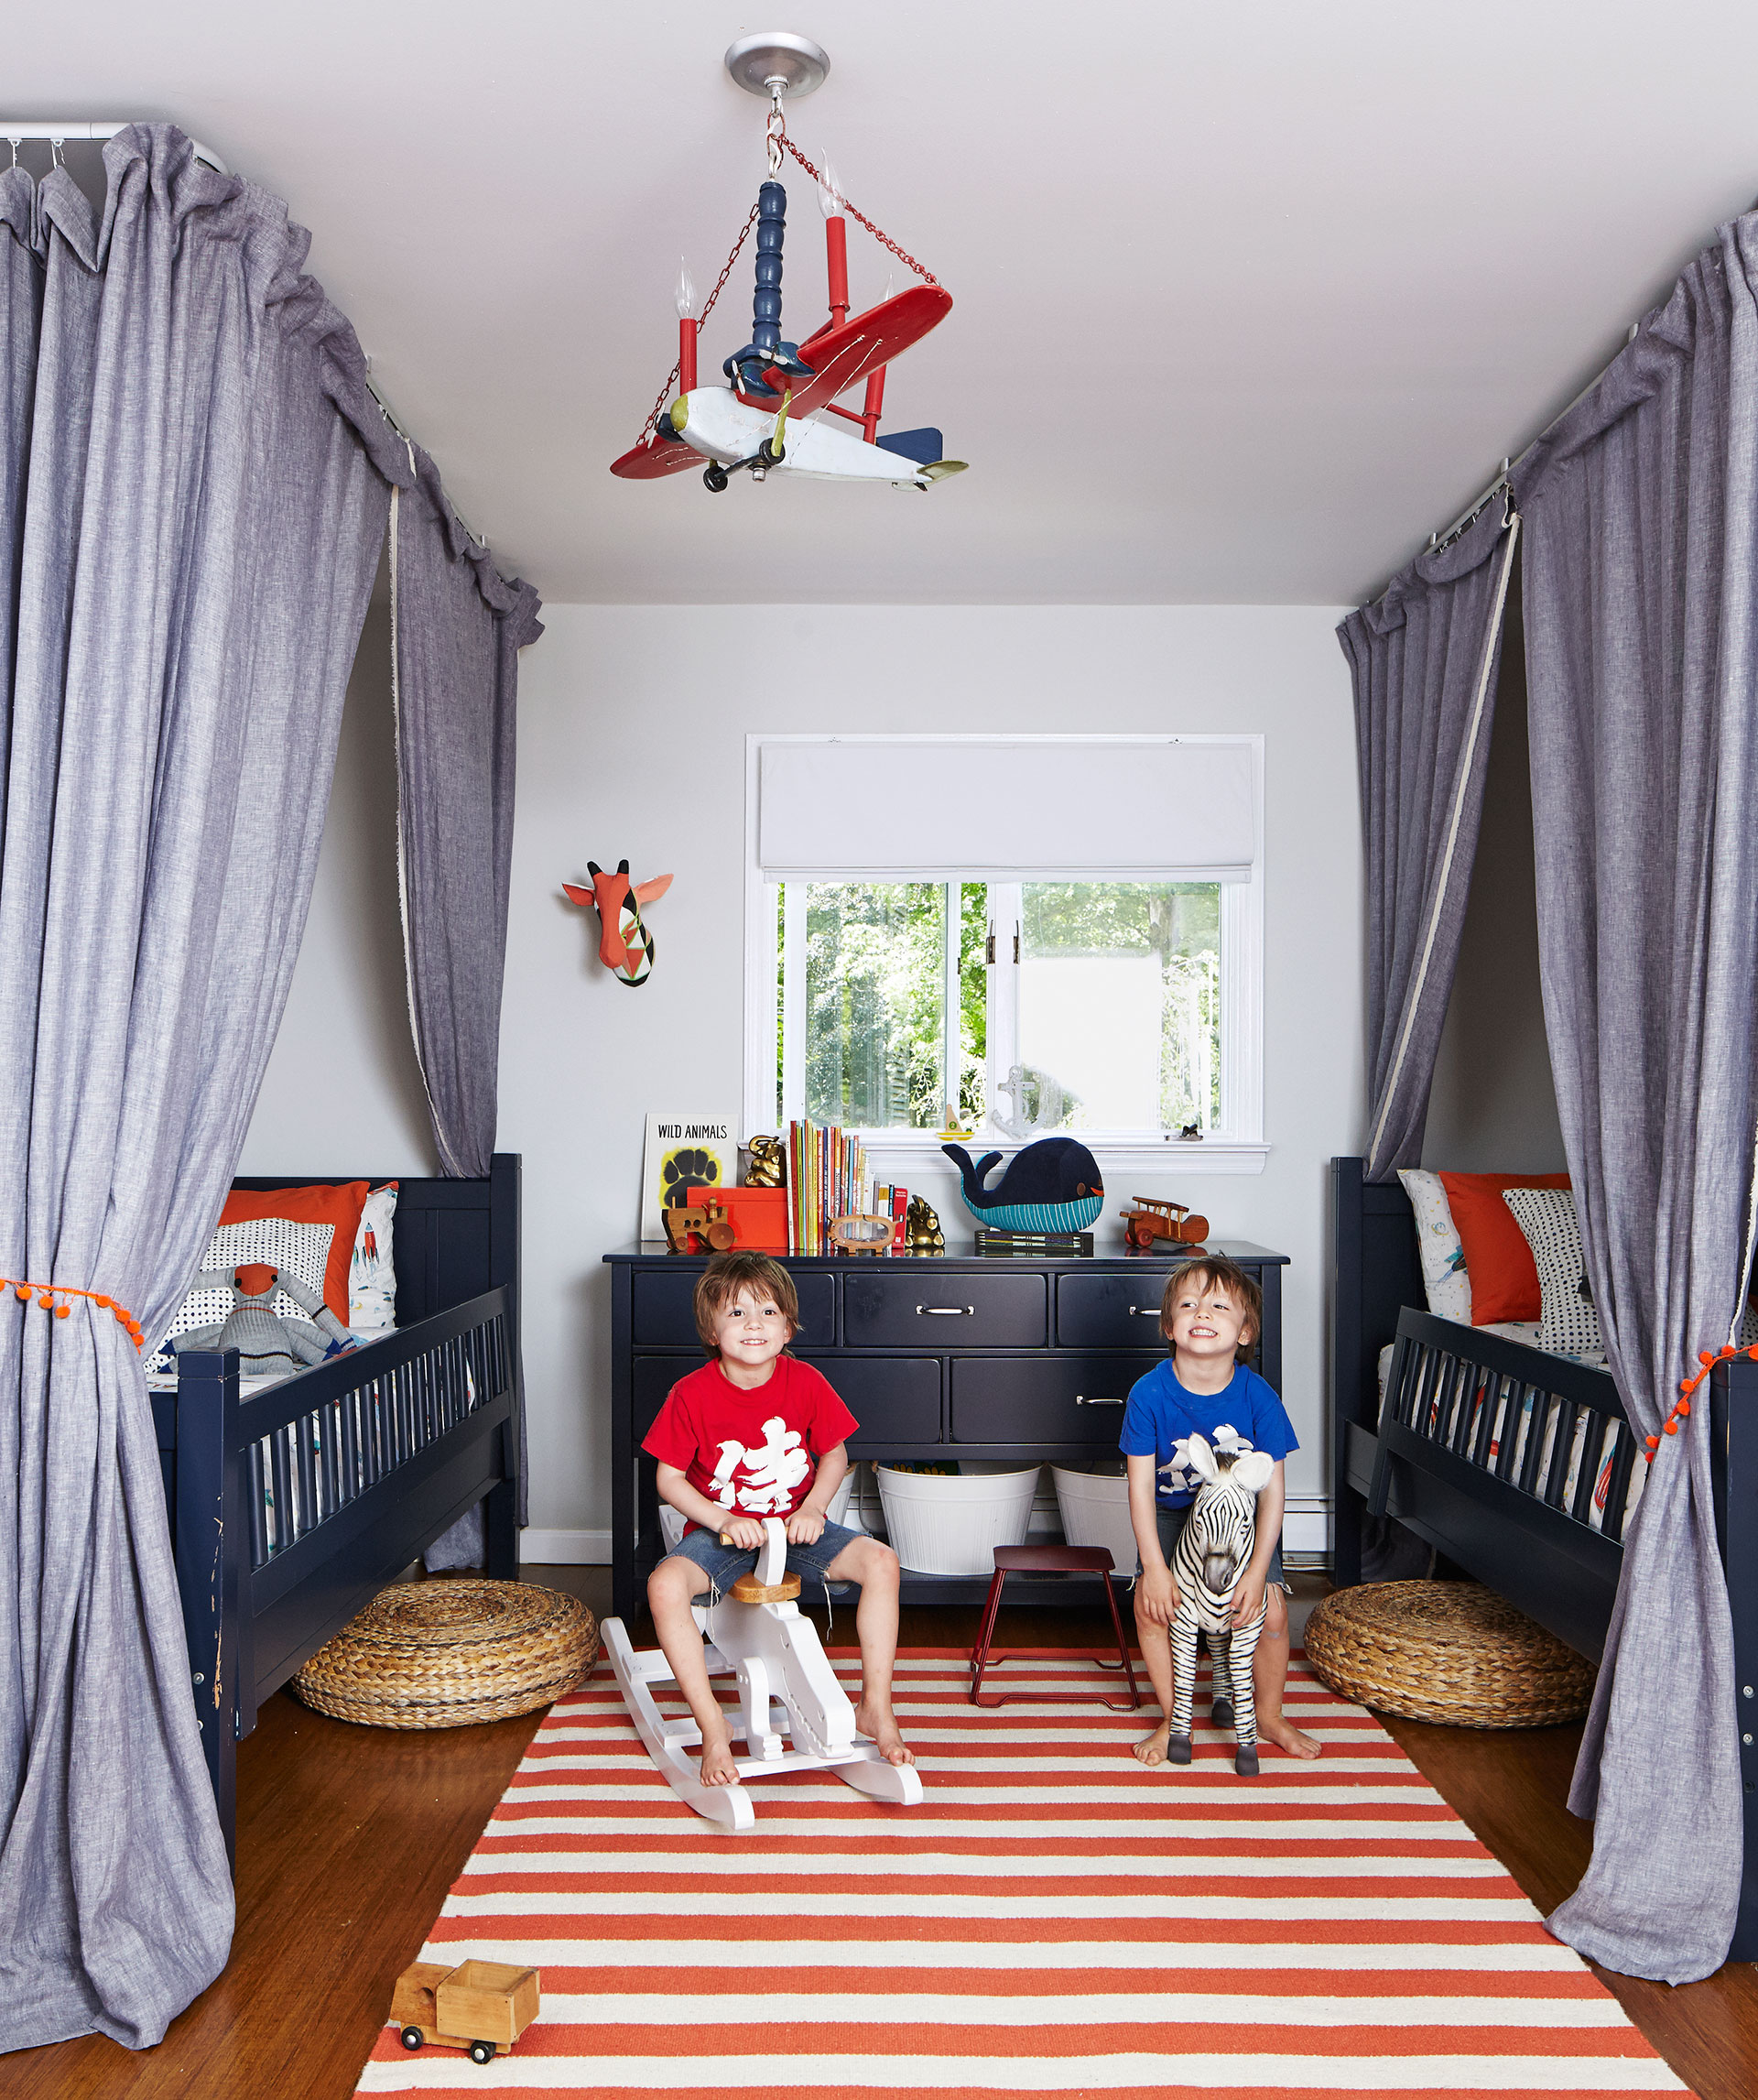 50 kids room decor ideas bedroom design and decorating for kids - Decorating A Boys Room Ideas